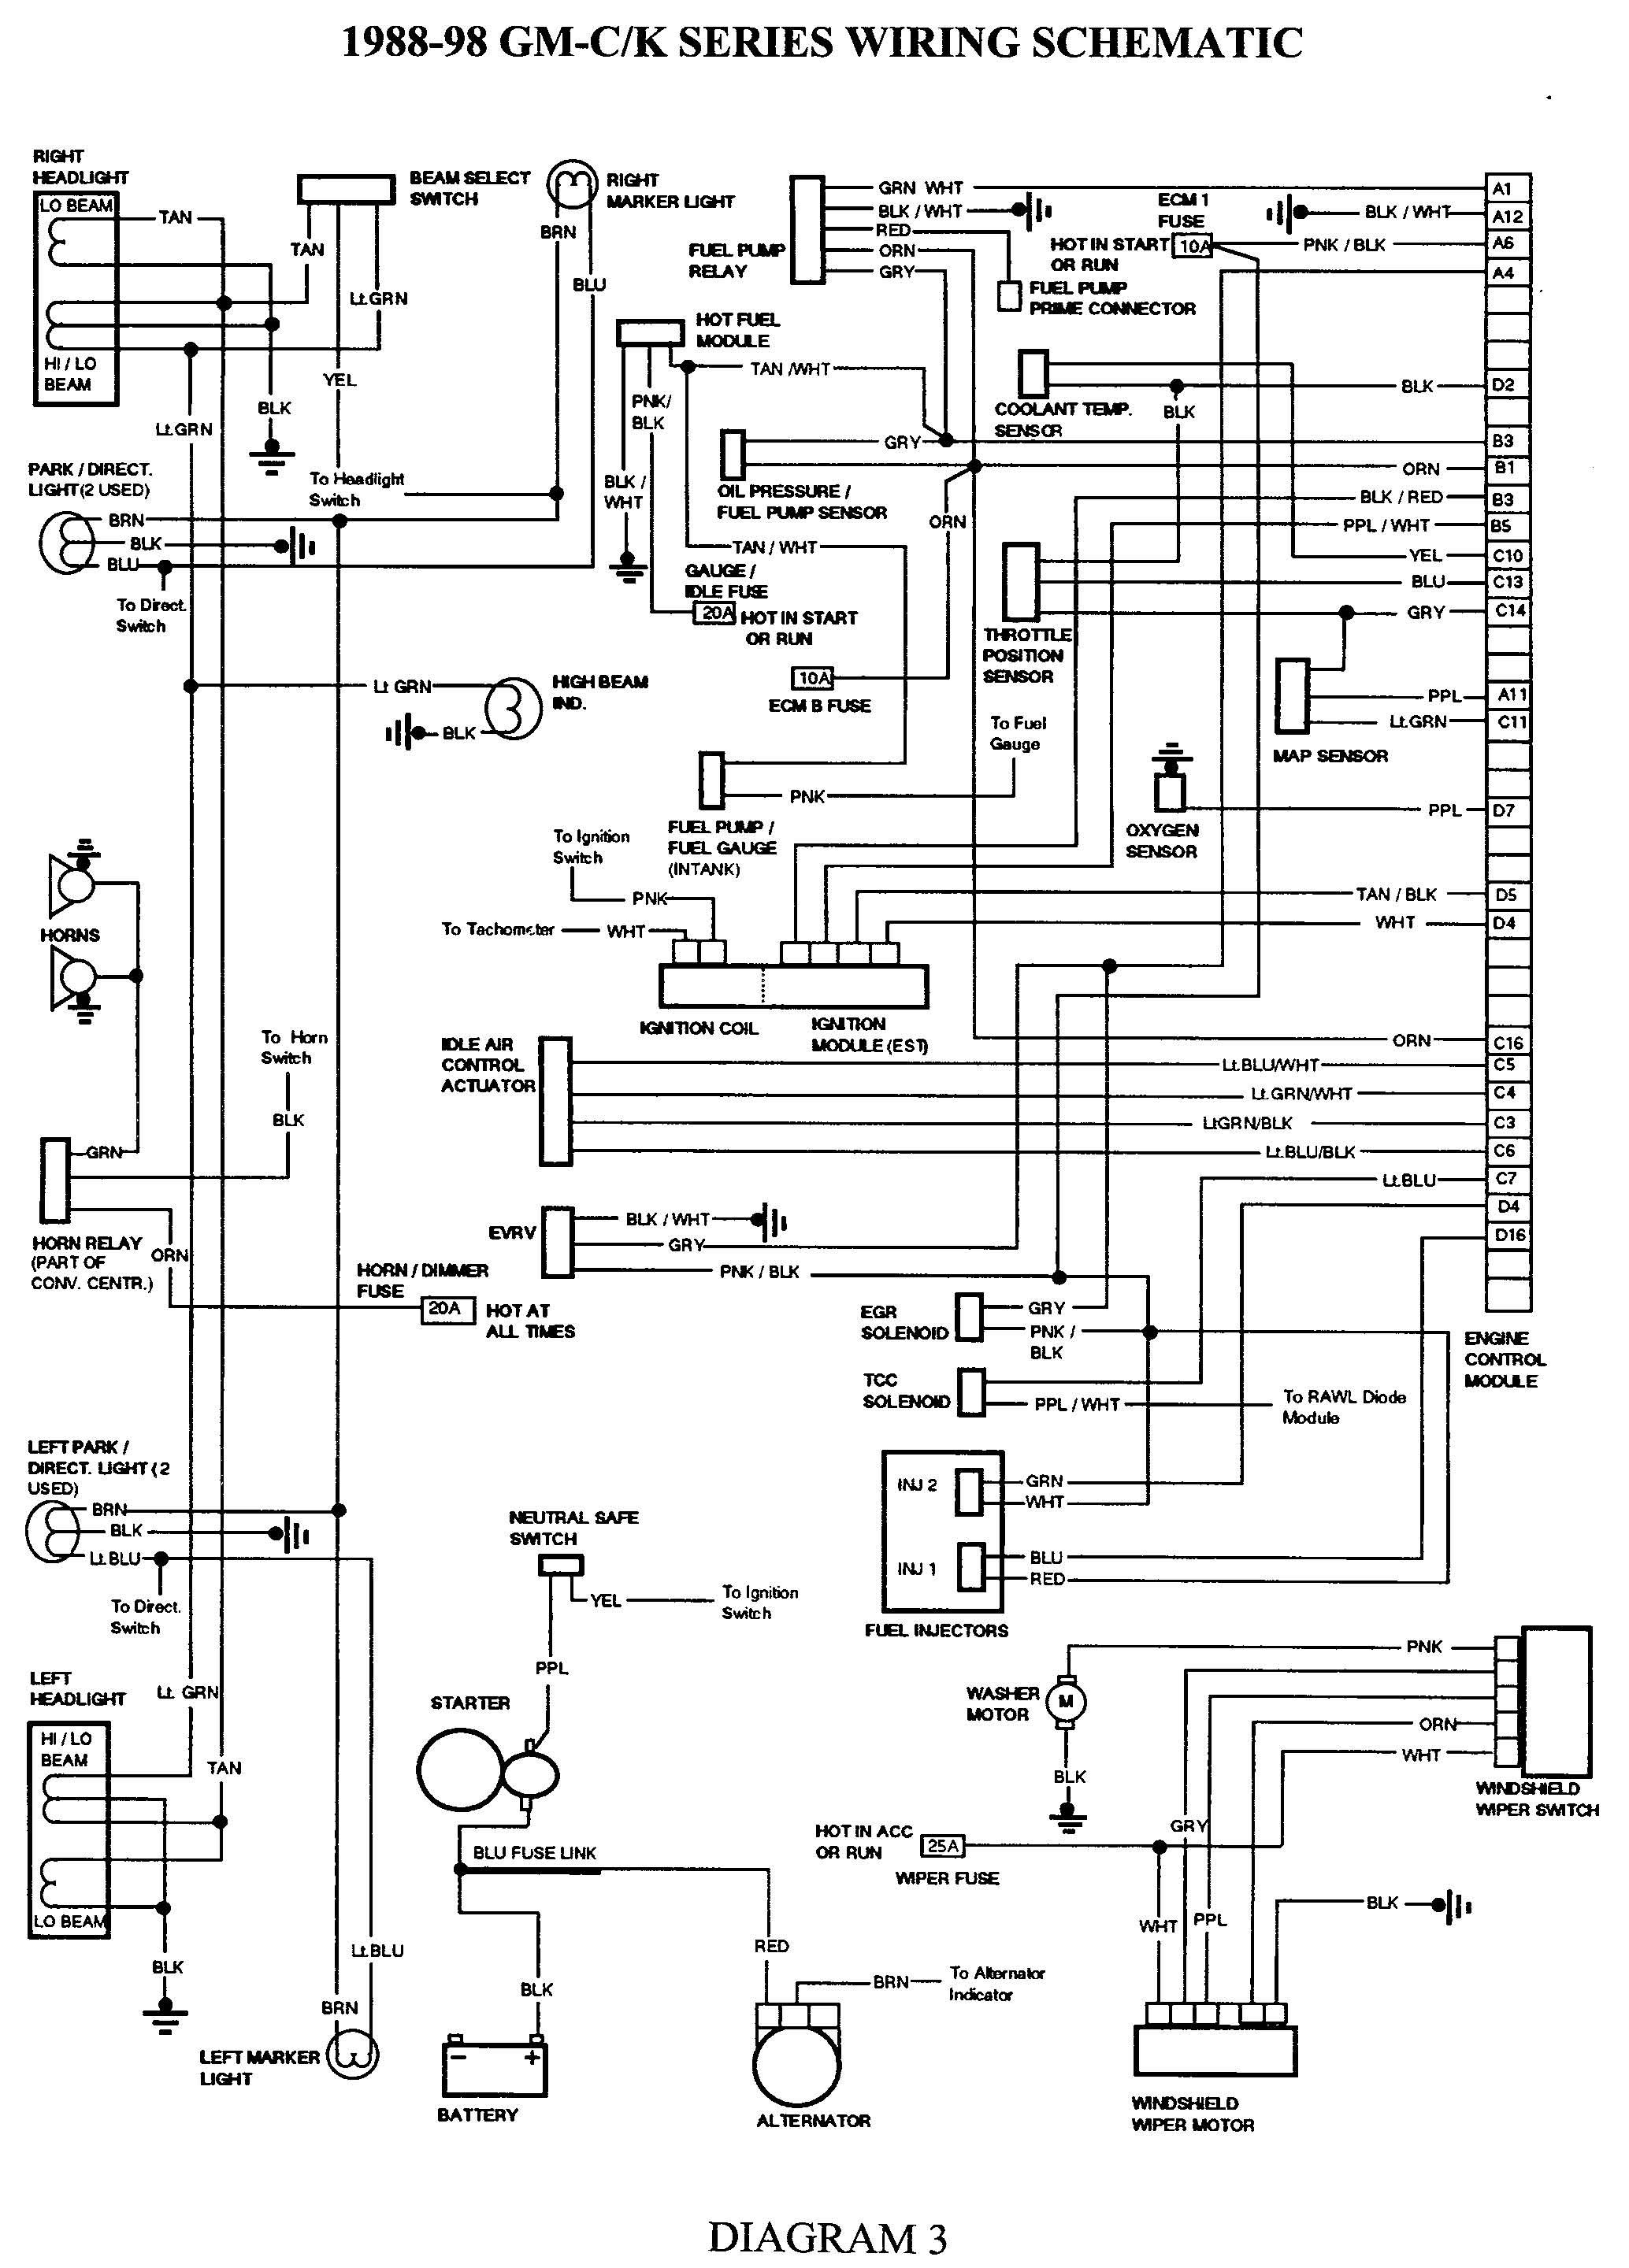 hight resolution of gmc truck wiring diagrams on gm wiring harness diagram 88 98 kc 1984 gmc truck wiring diagram gmc general trucks wiring diagram